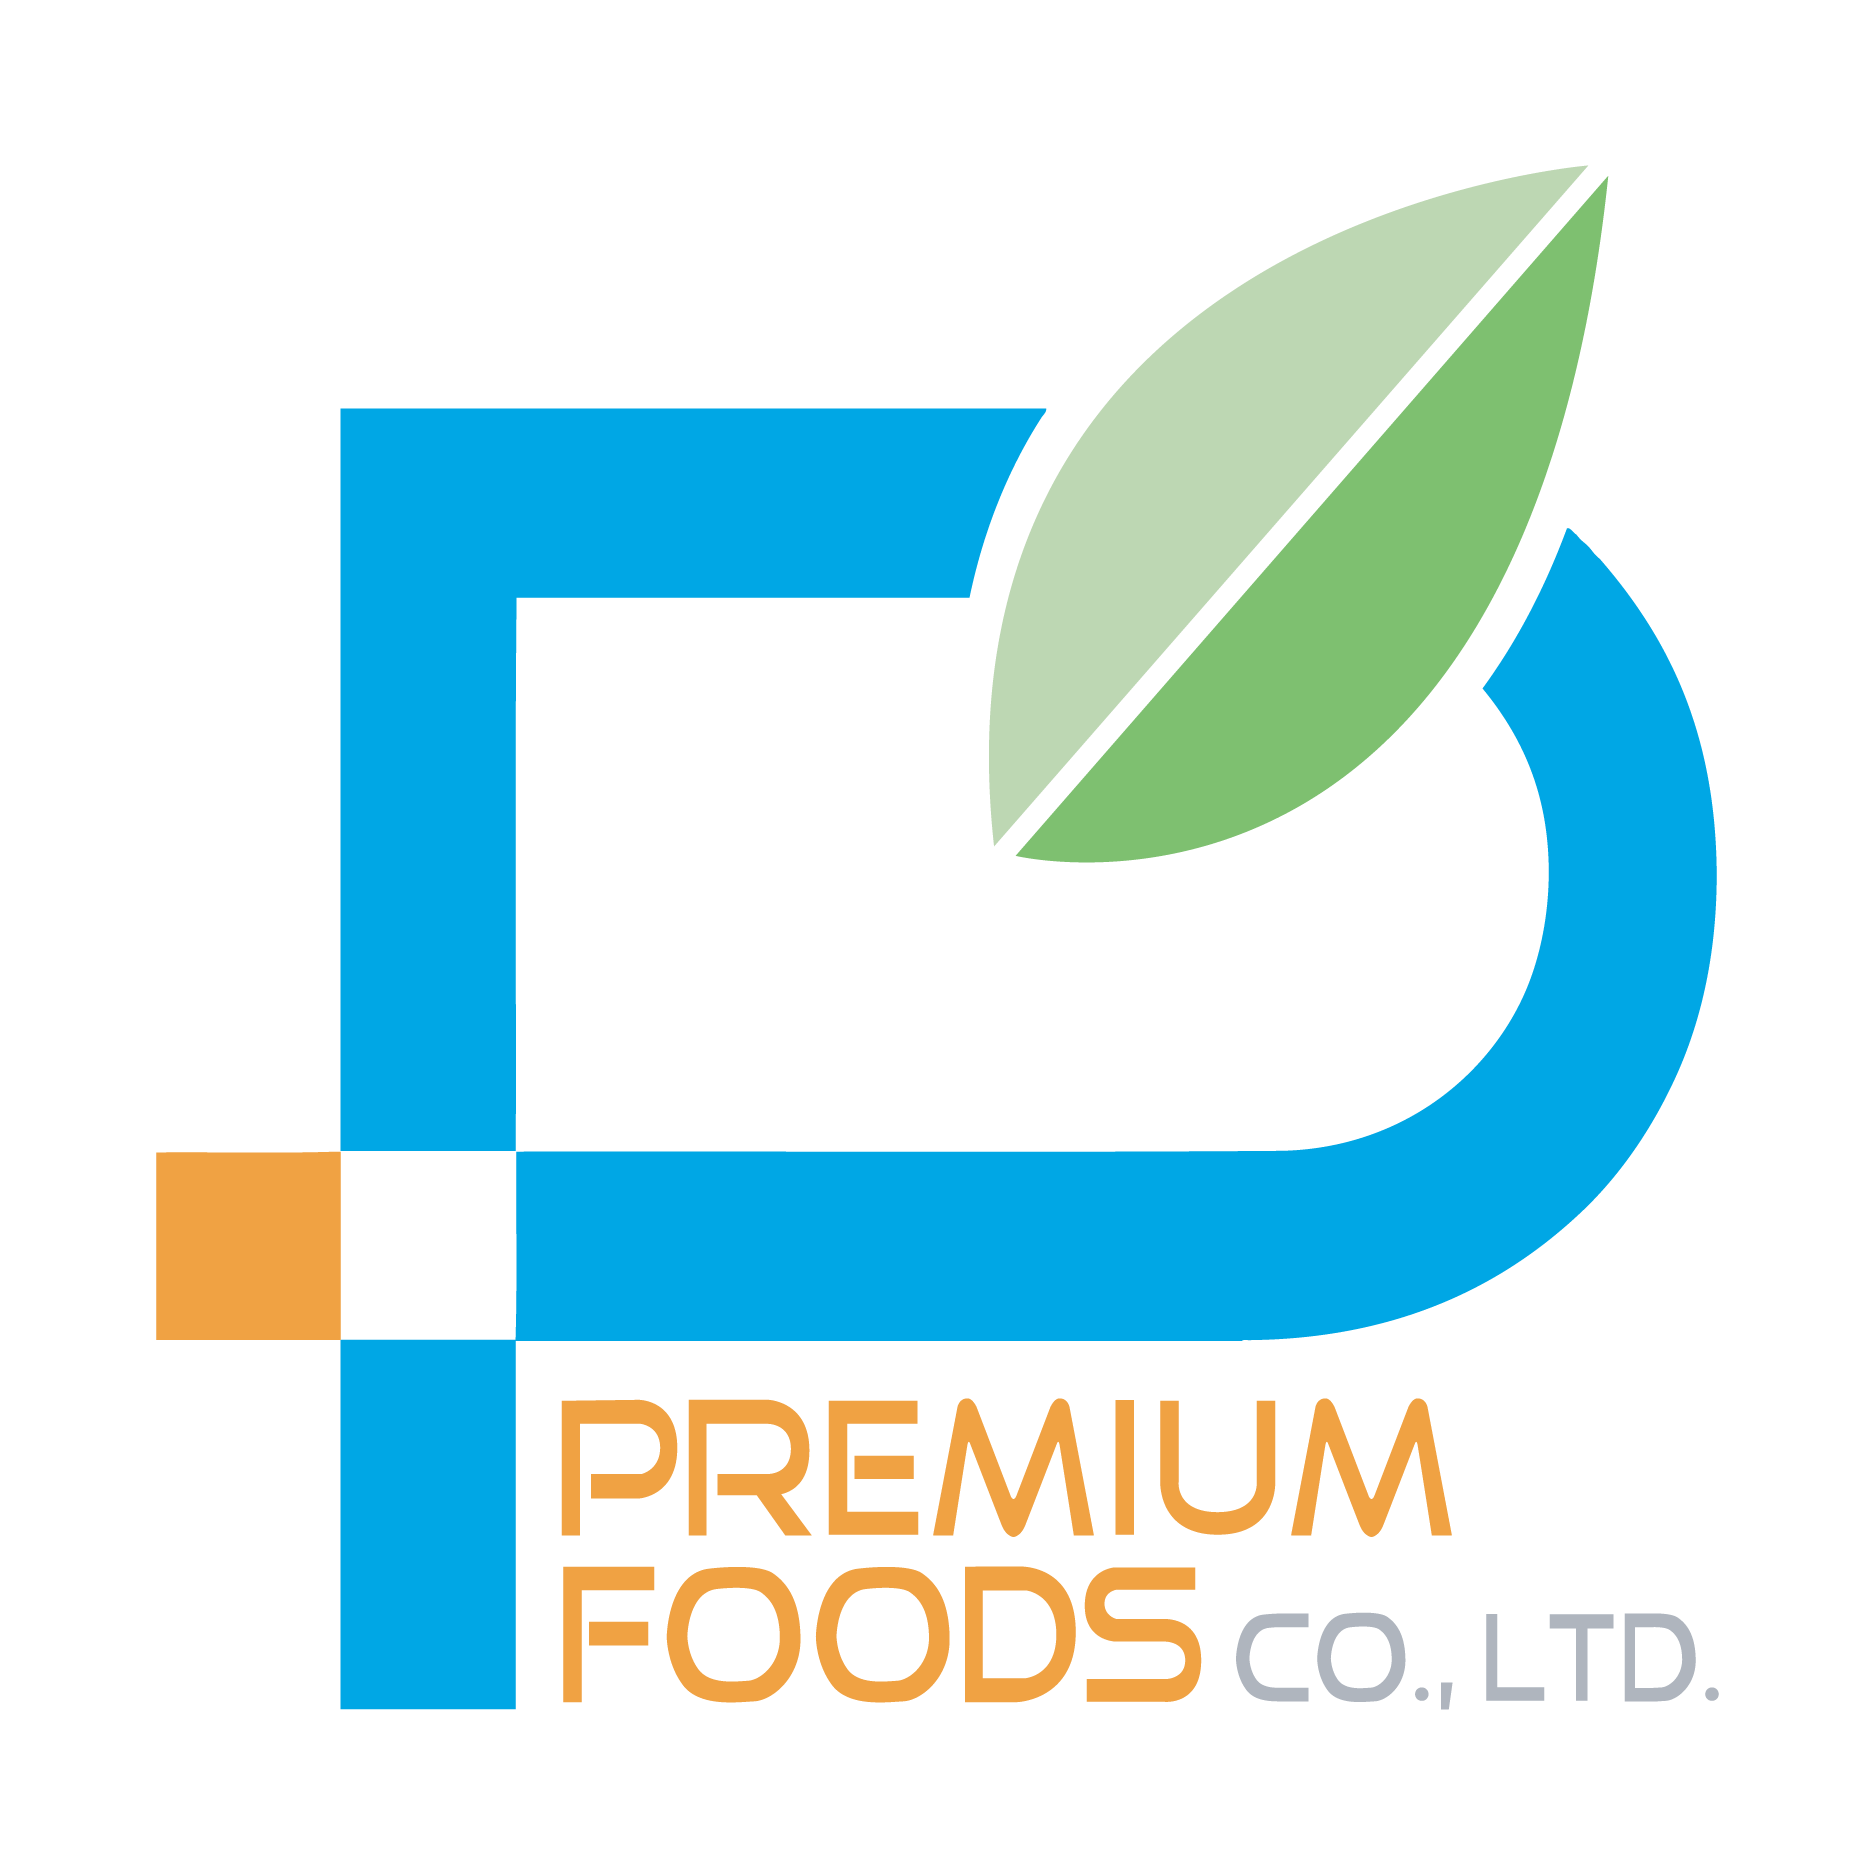 Premium Foods Co.,Ltd.